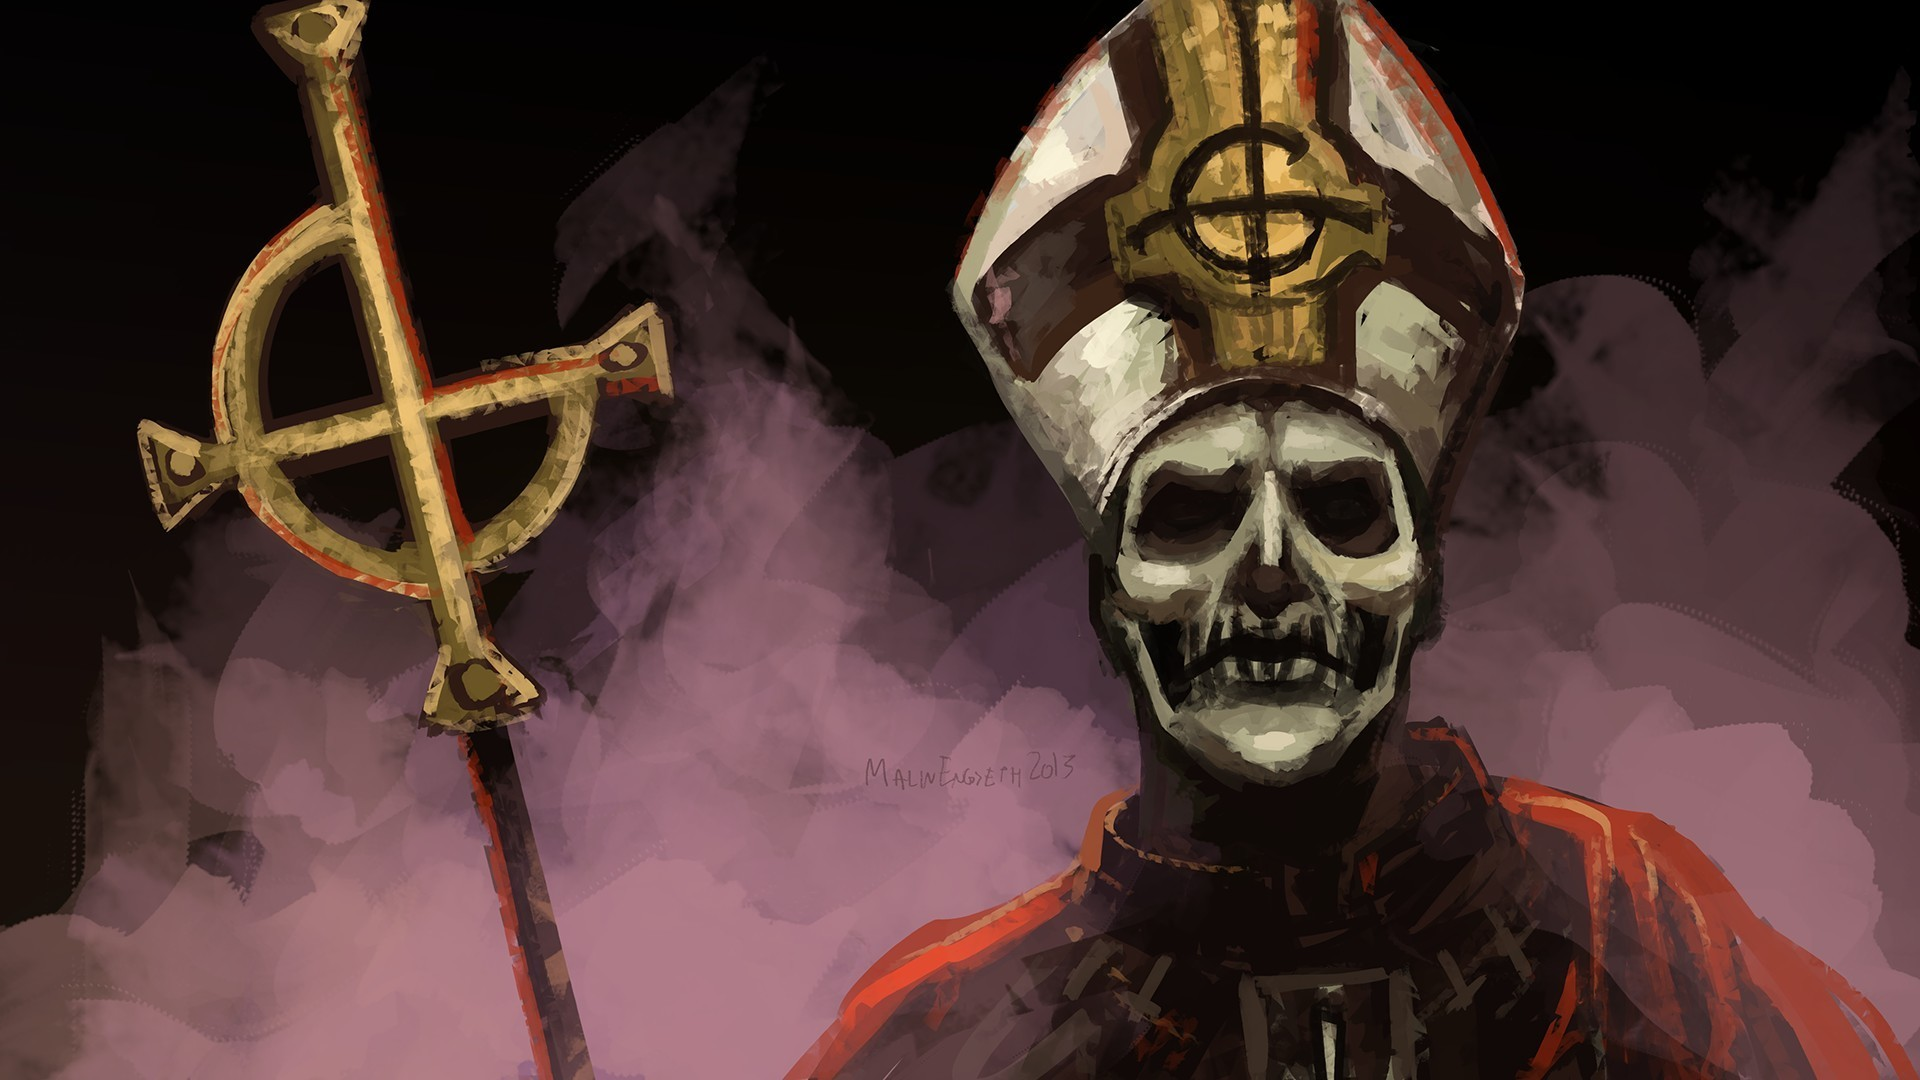 Res: 1920x1080, Ghost B.C. Wallpapers 6 - 1920 X 1080